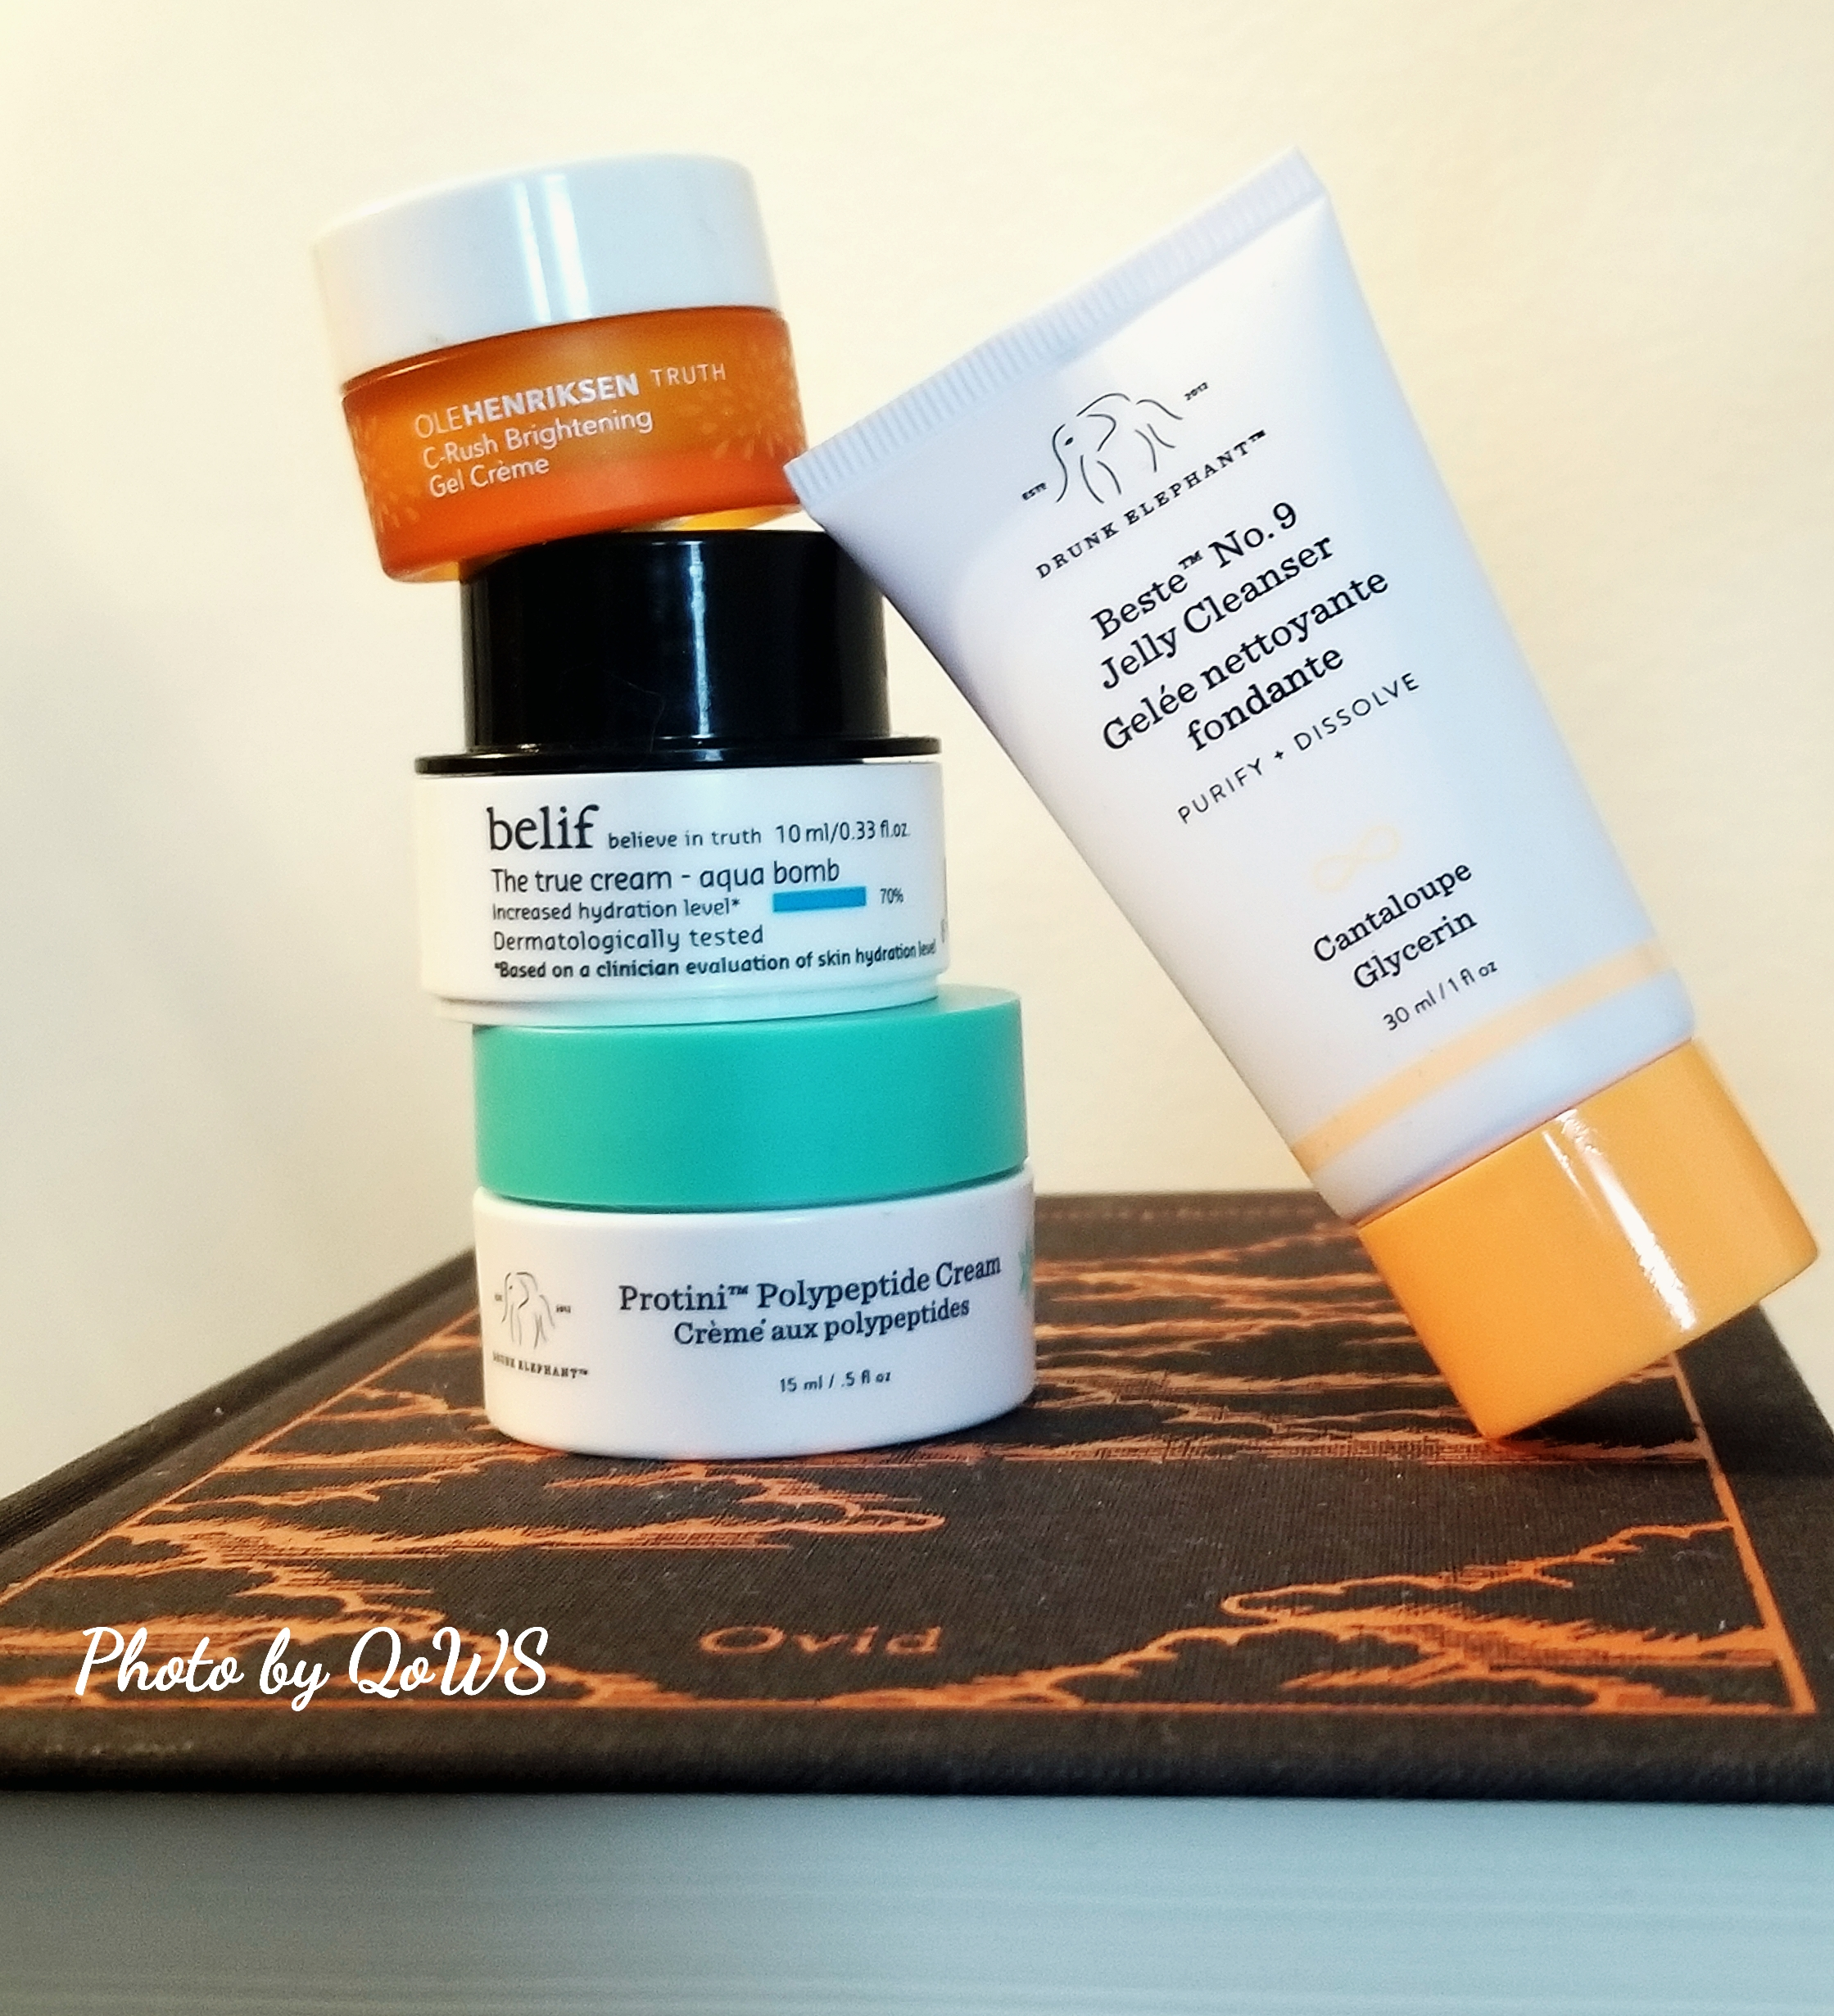 skincare samples tower drunk elephant belif ole henriksen